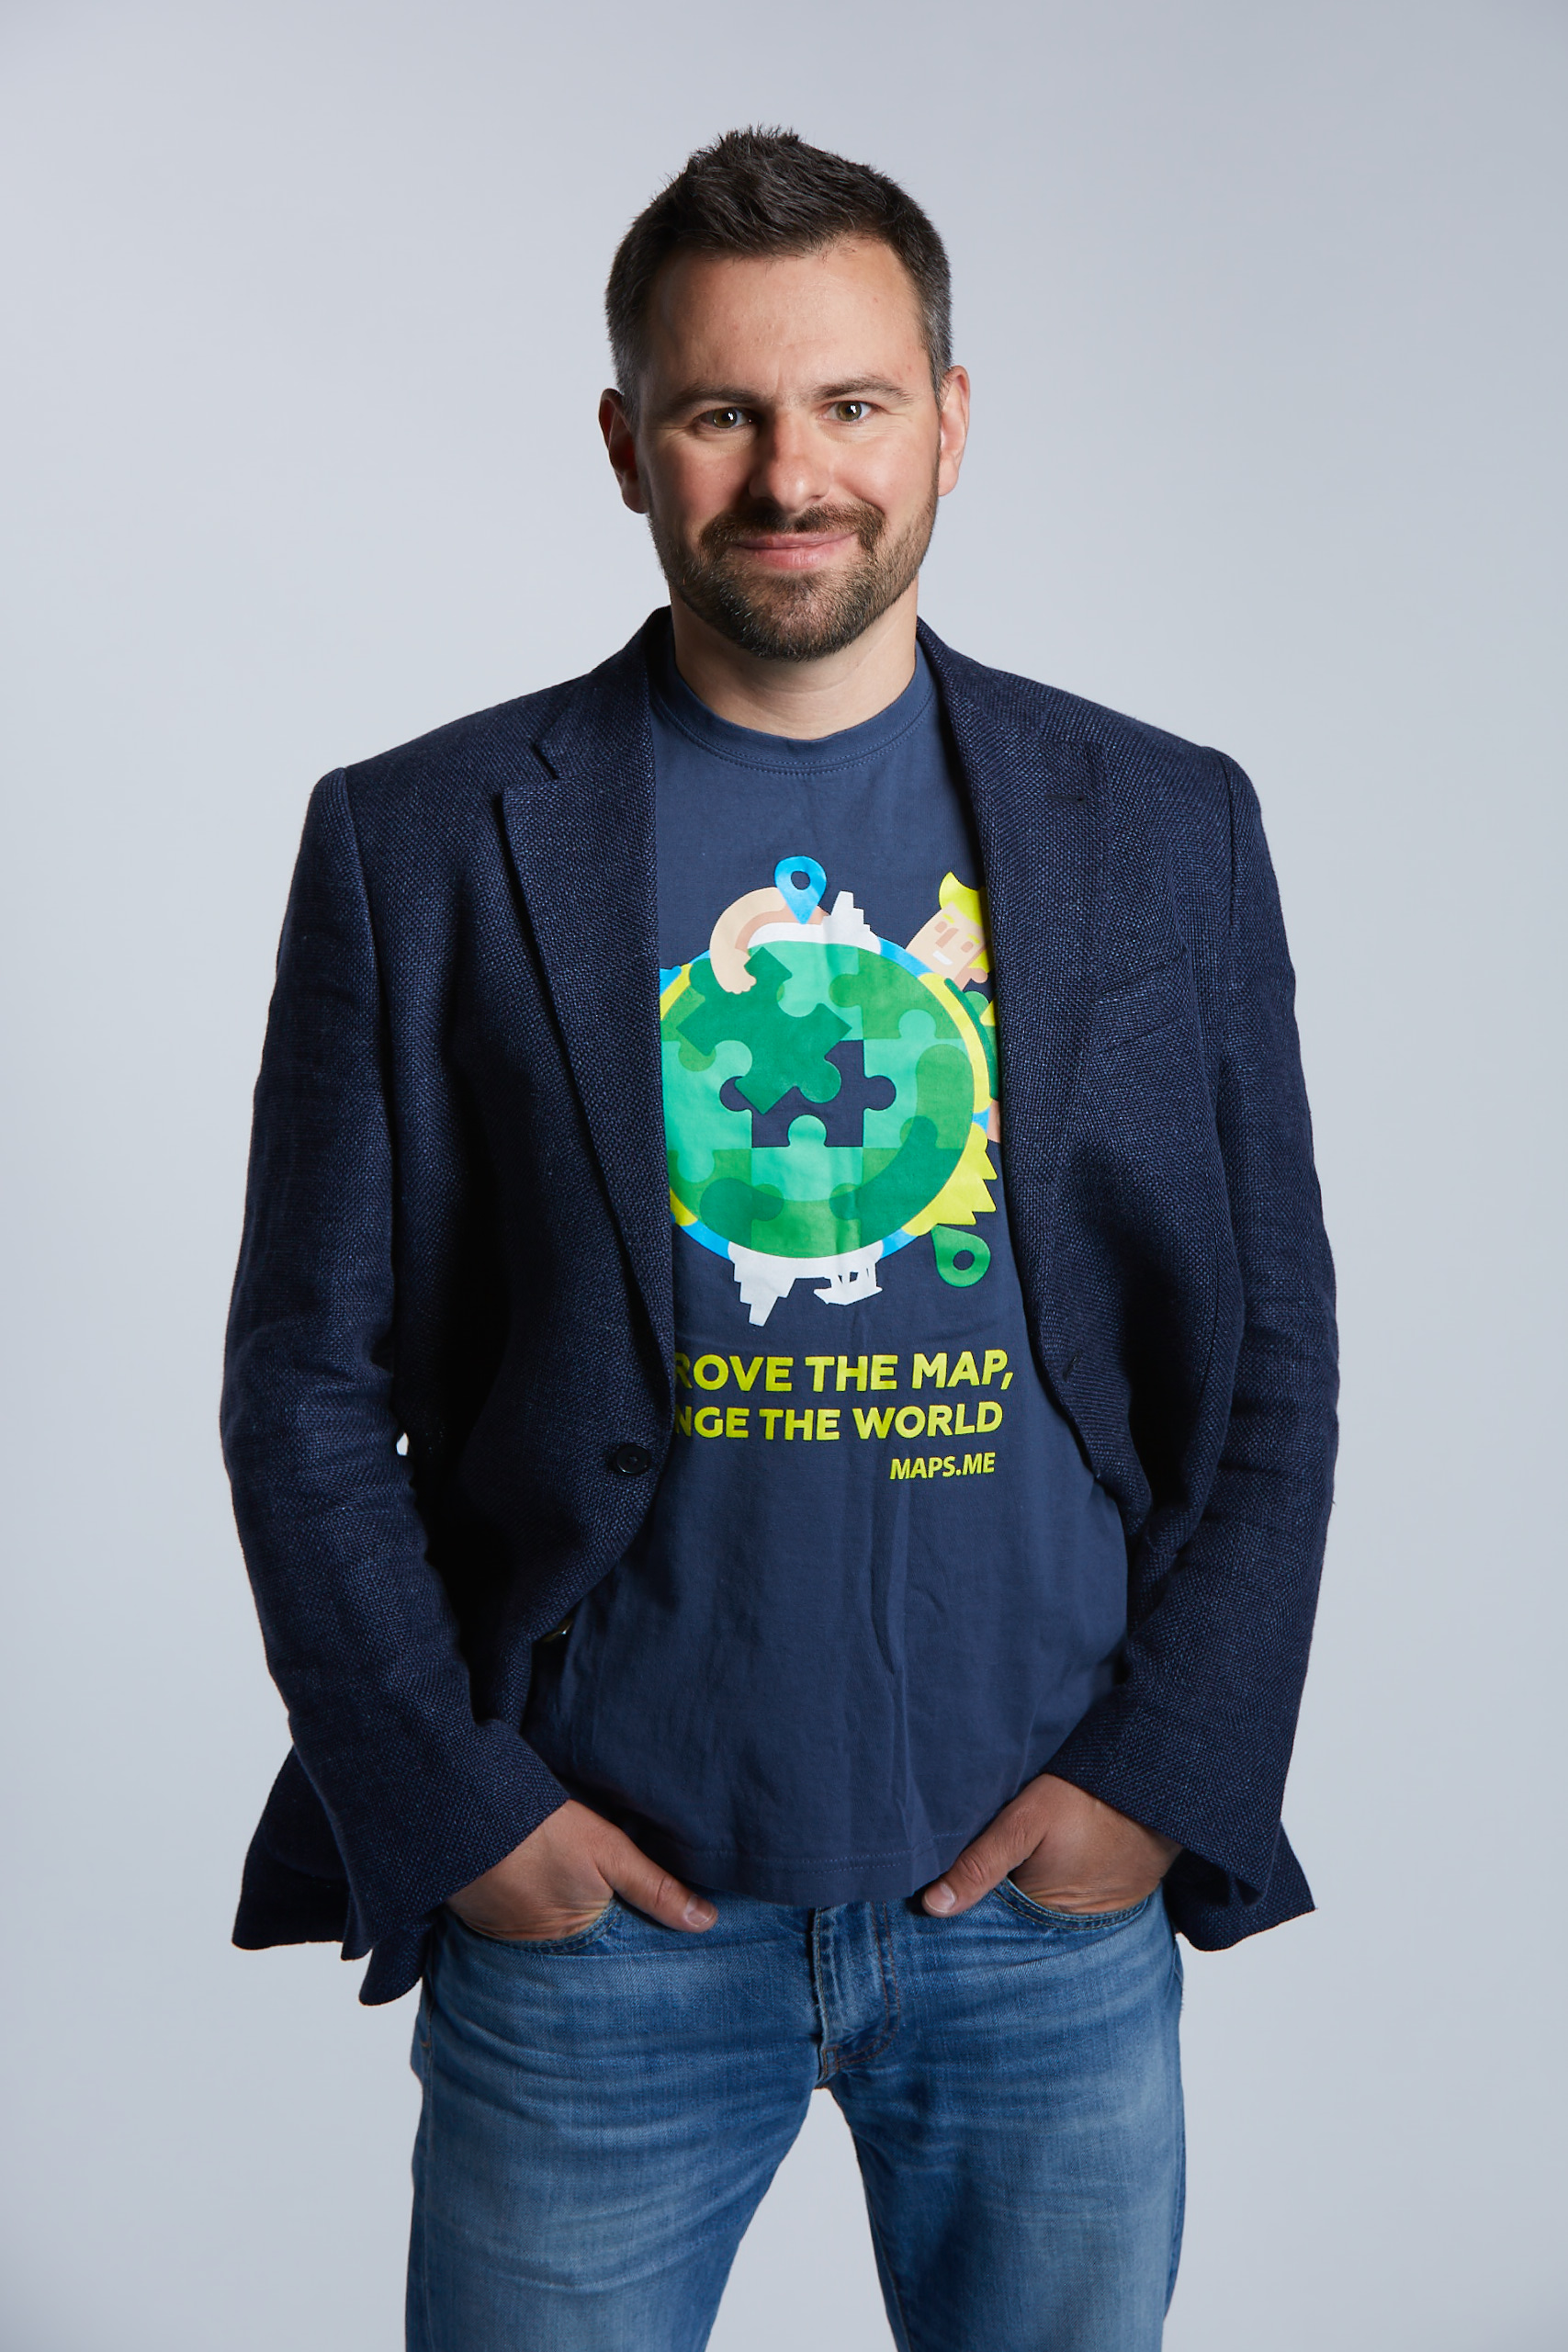 CEO of MAPS.ME